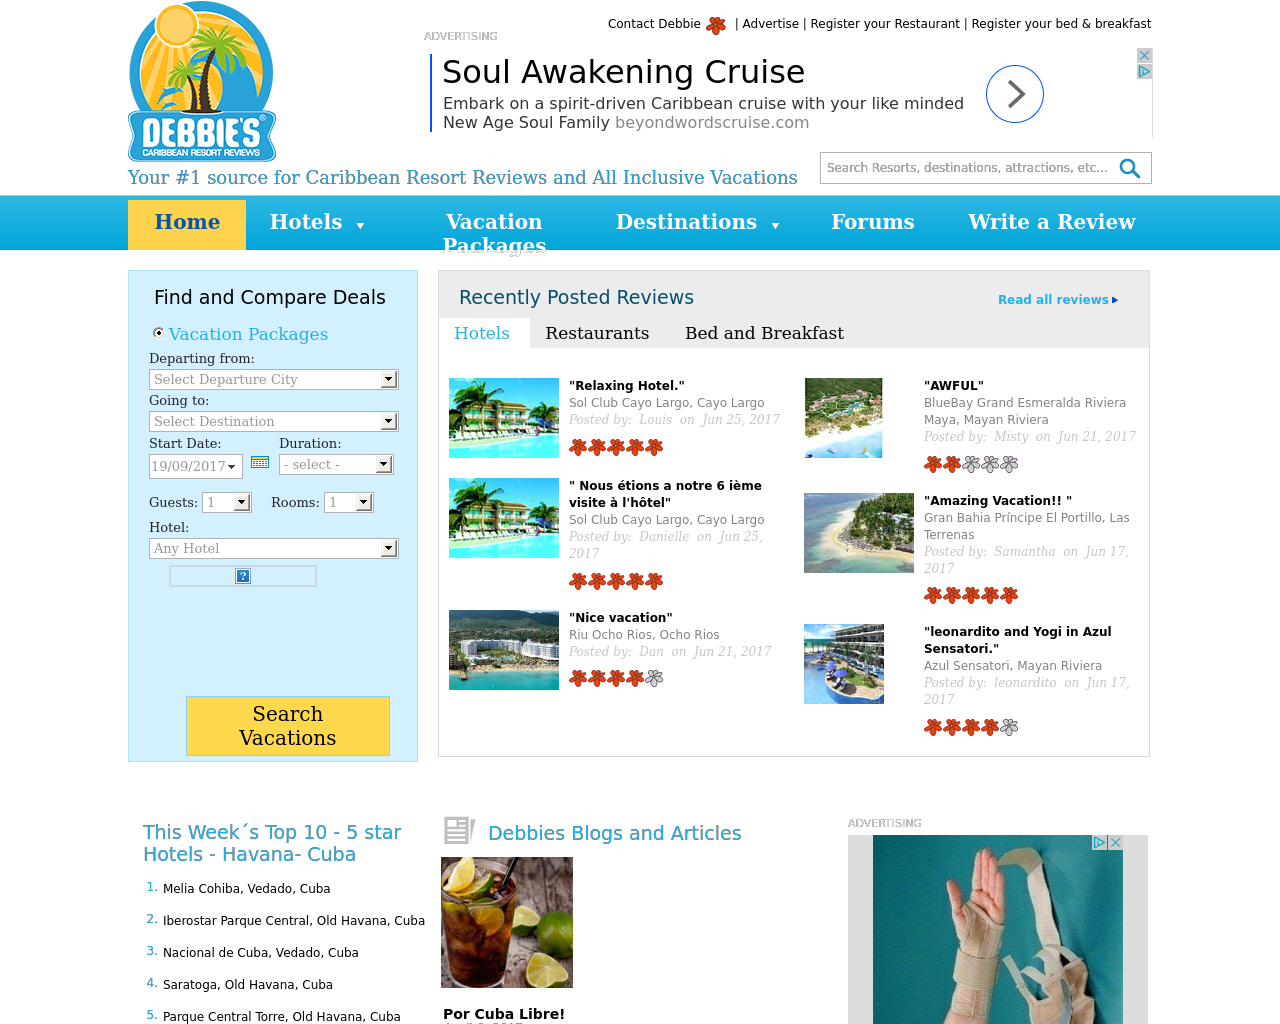 Debbies-Caribbean-Resort-Reviews-Advertising-Reviews-Pricing